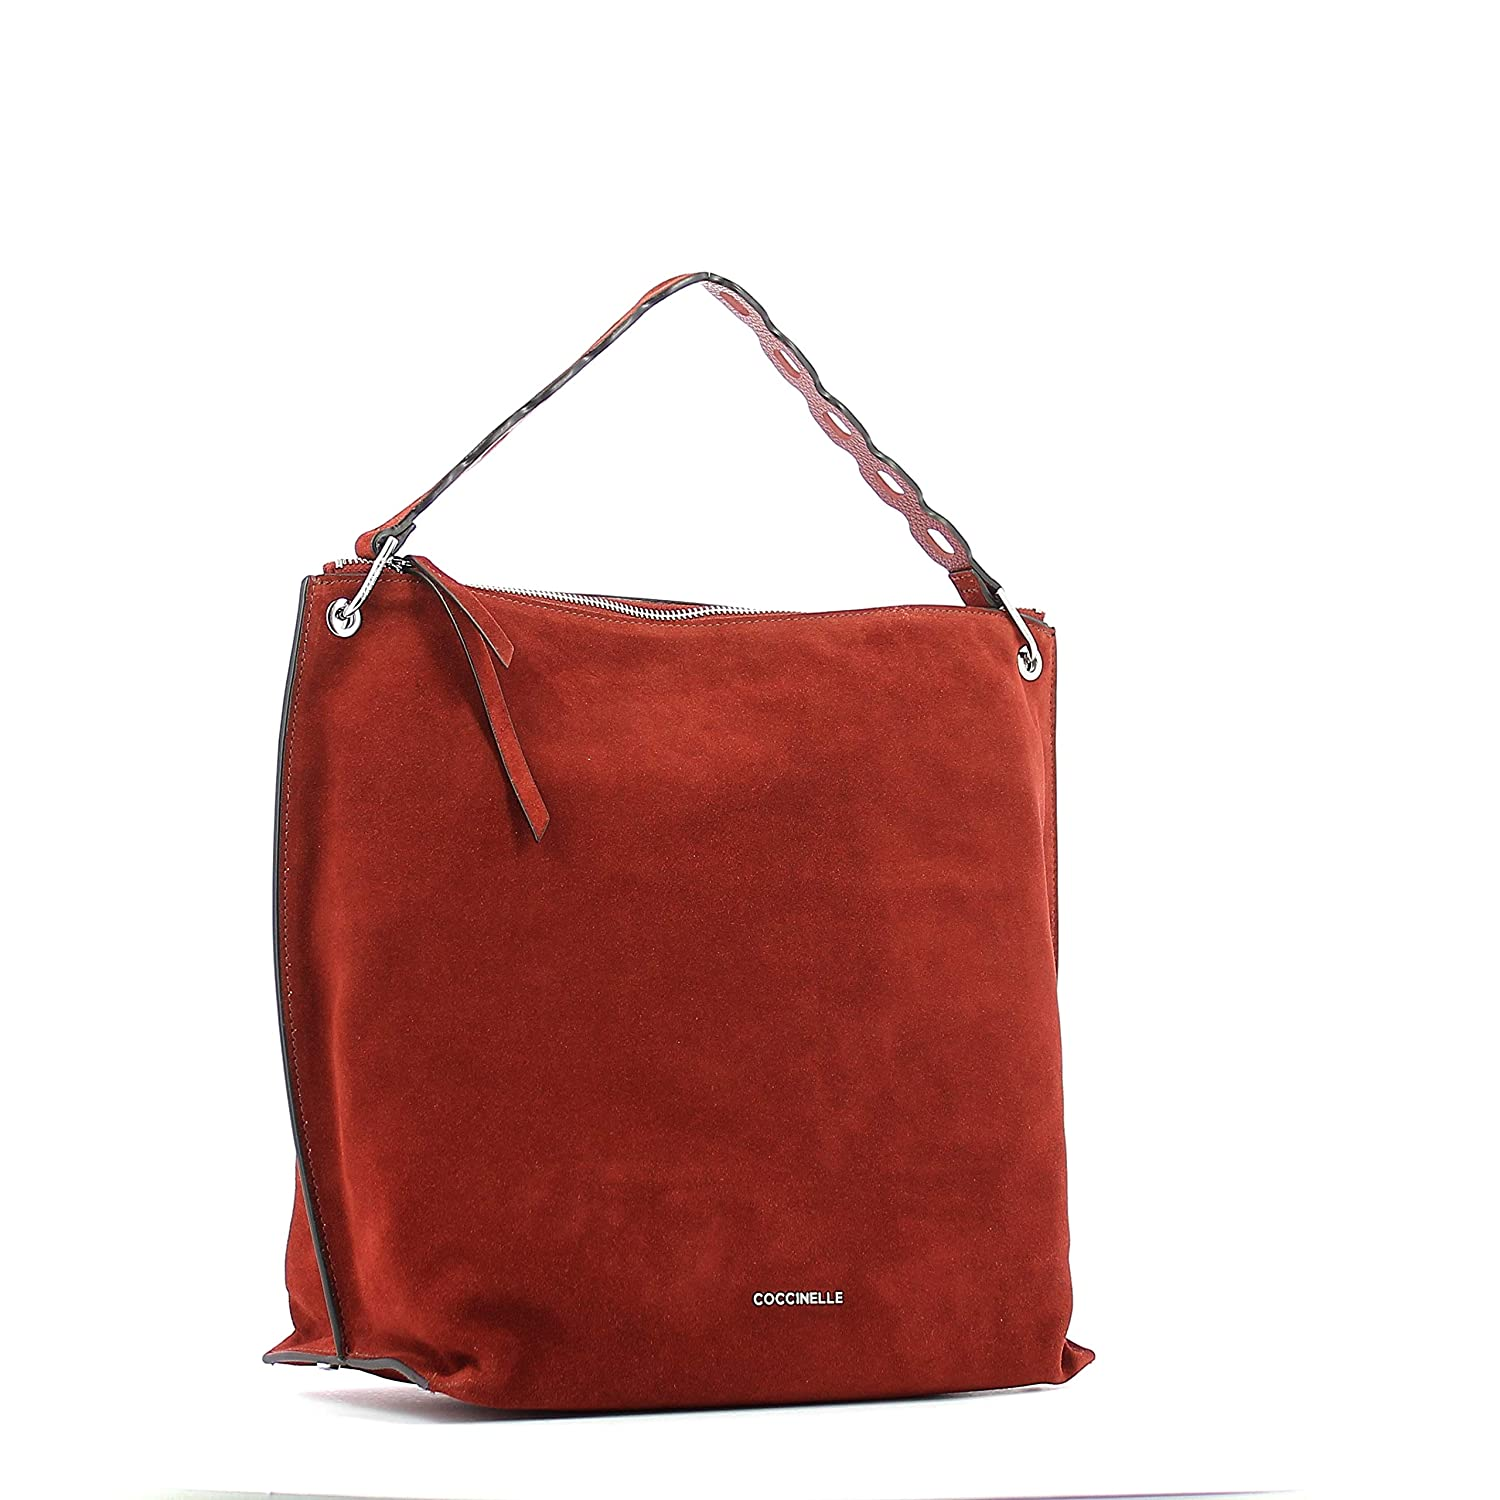 4a96f3f3e9af7 Coccinelle Naive Suede Beuteltasche rotbraun  Amazon.de  Koffer ...